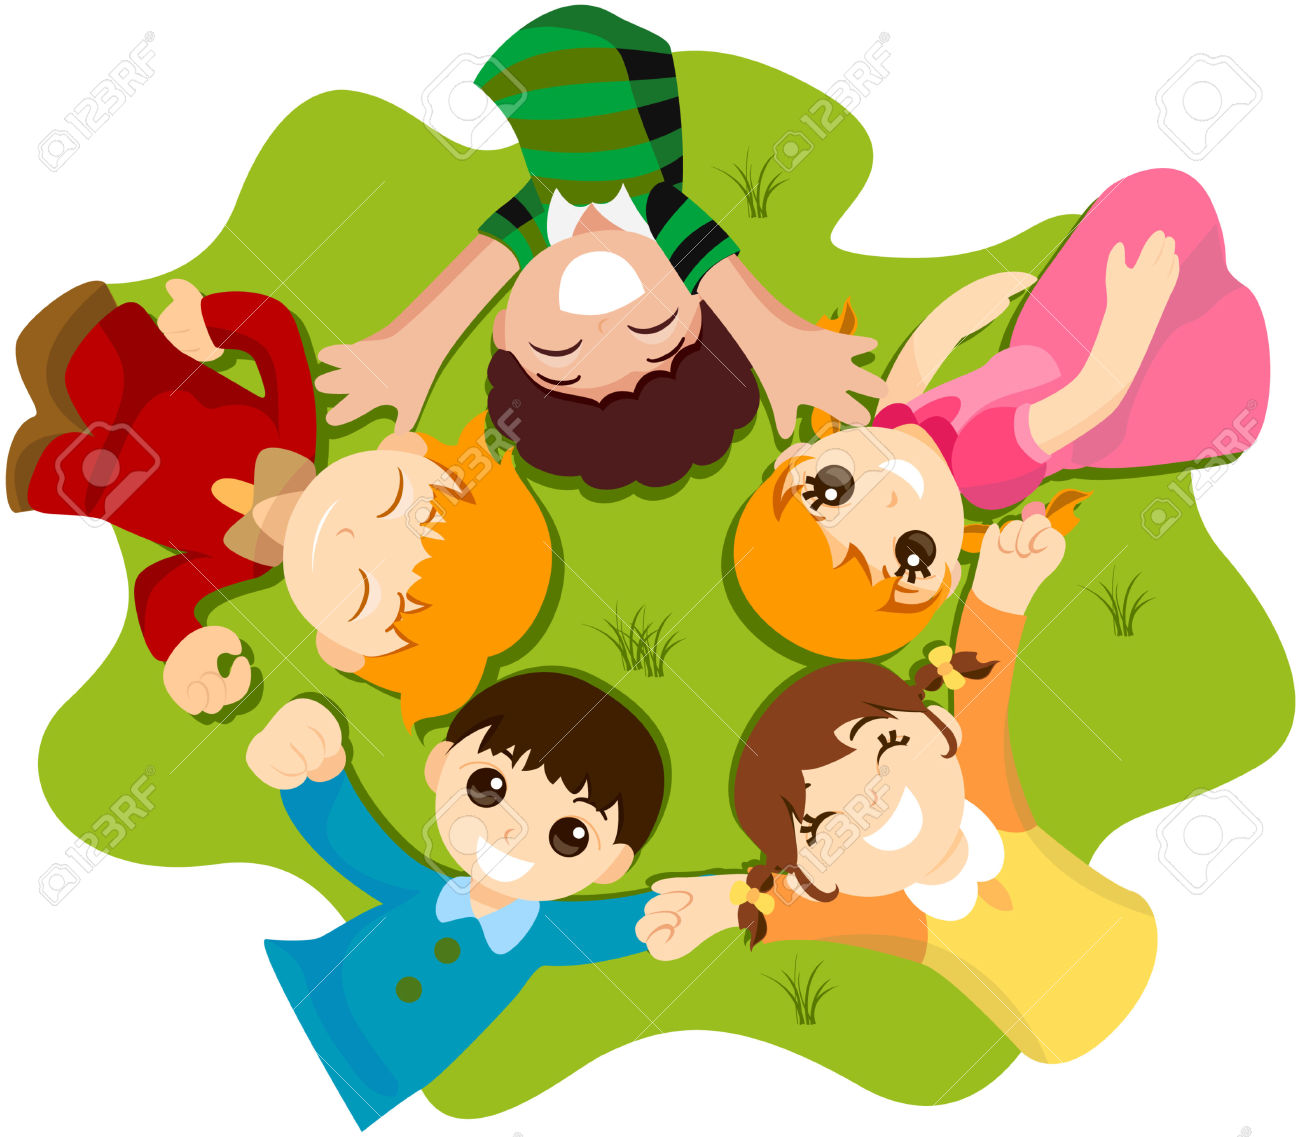 Kids on the grass clipart.